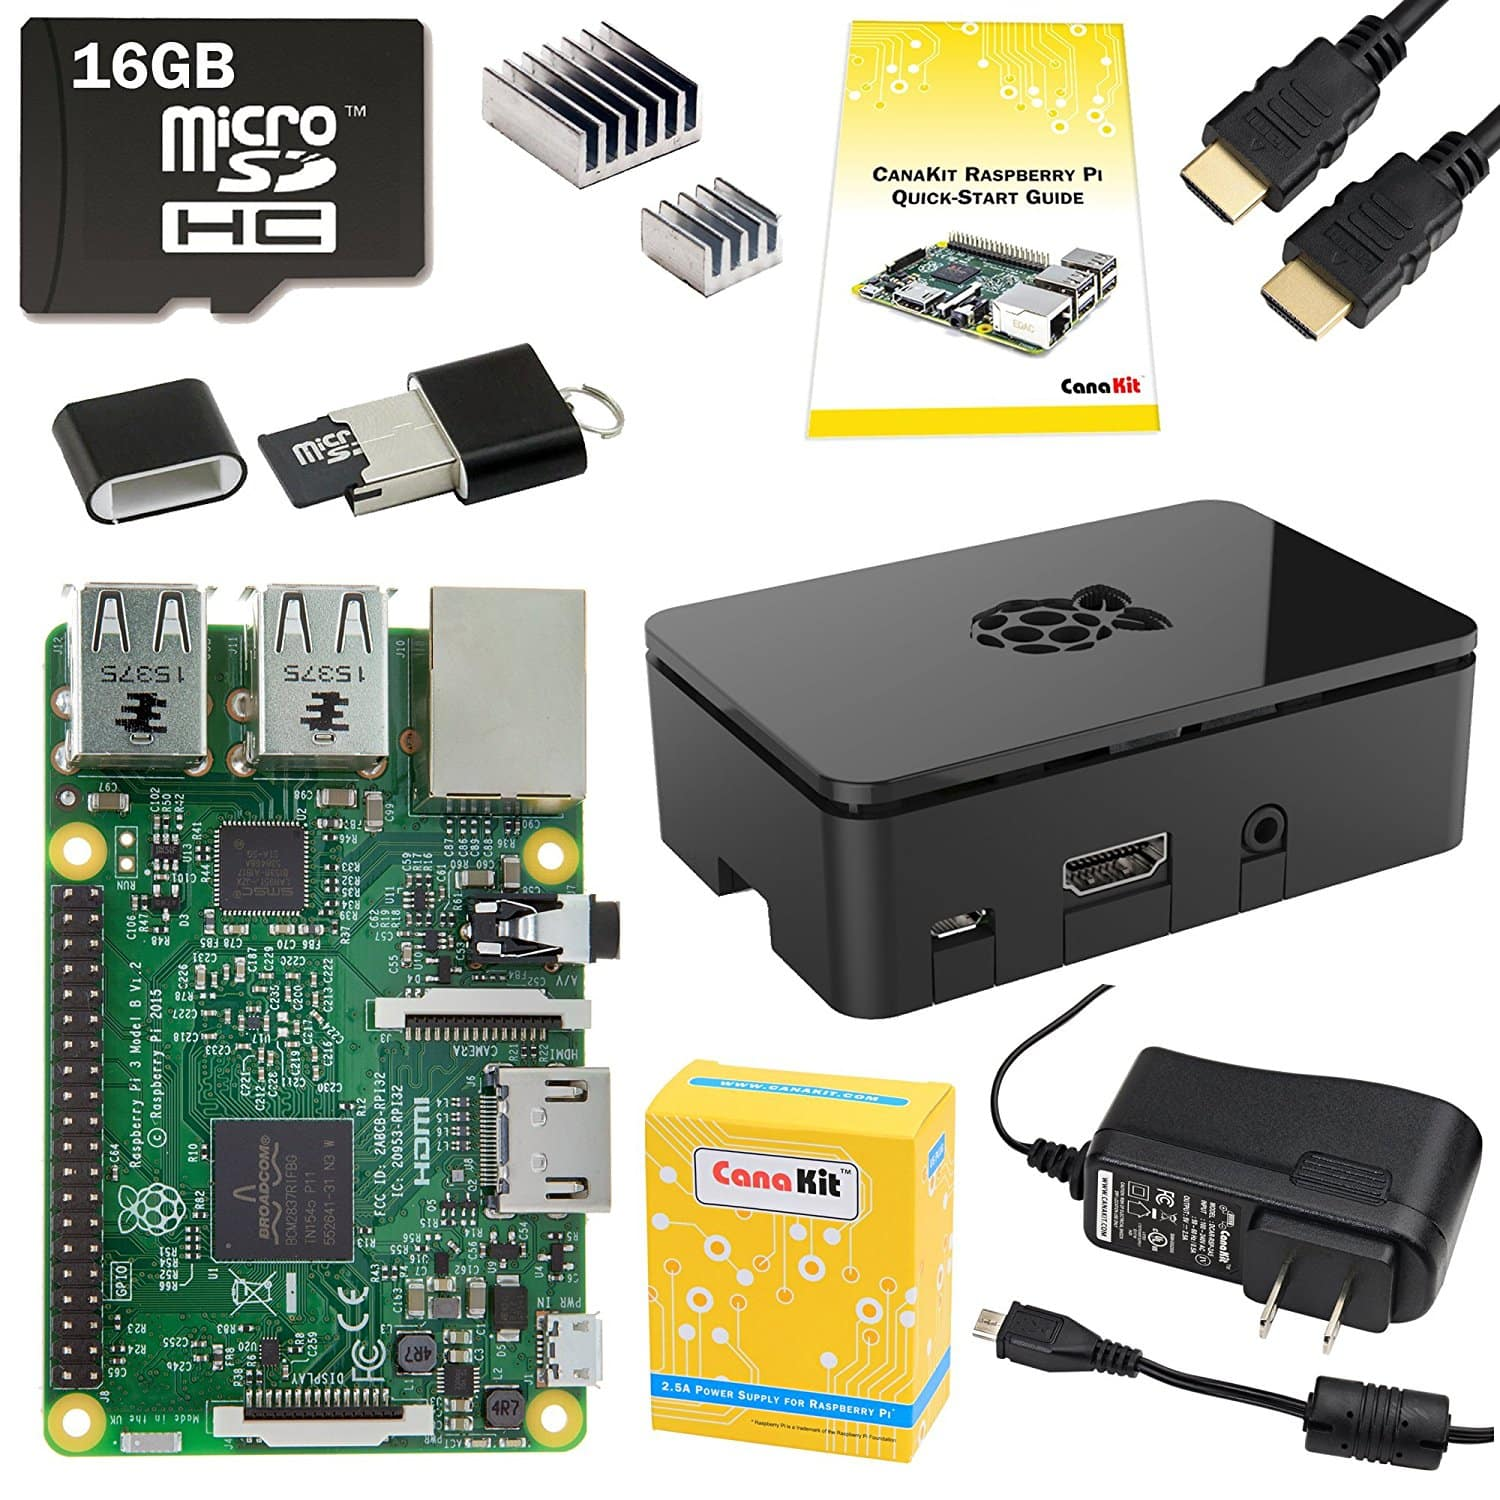 16GB CanaKit Raspberry Pi 3 Complete Starter Kit $49.99 + Free Shipping w/ Prime via Woot